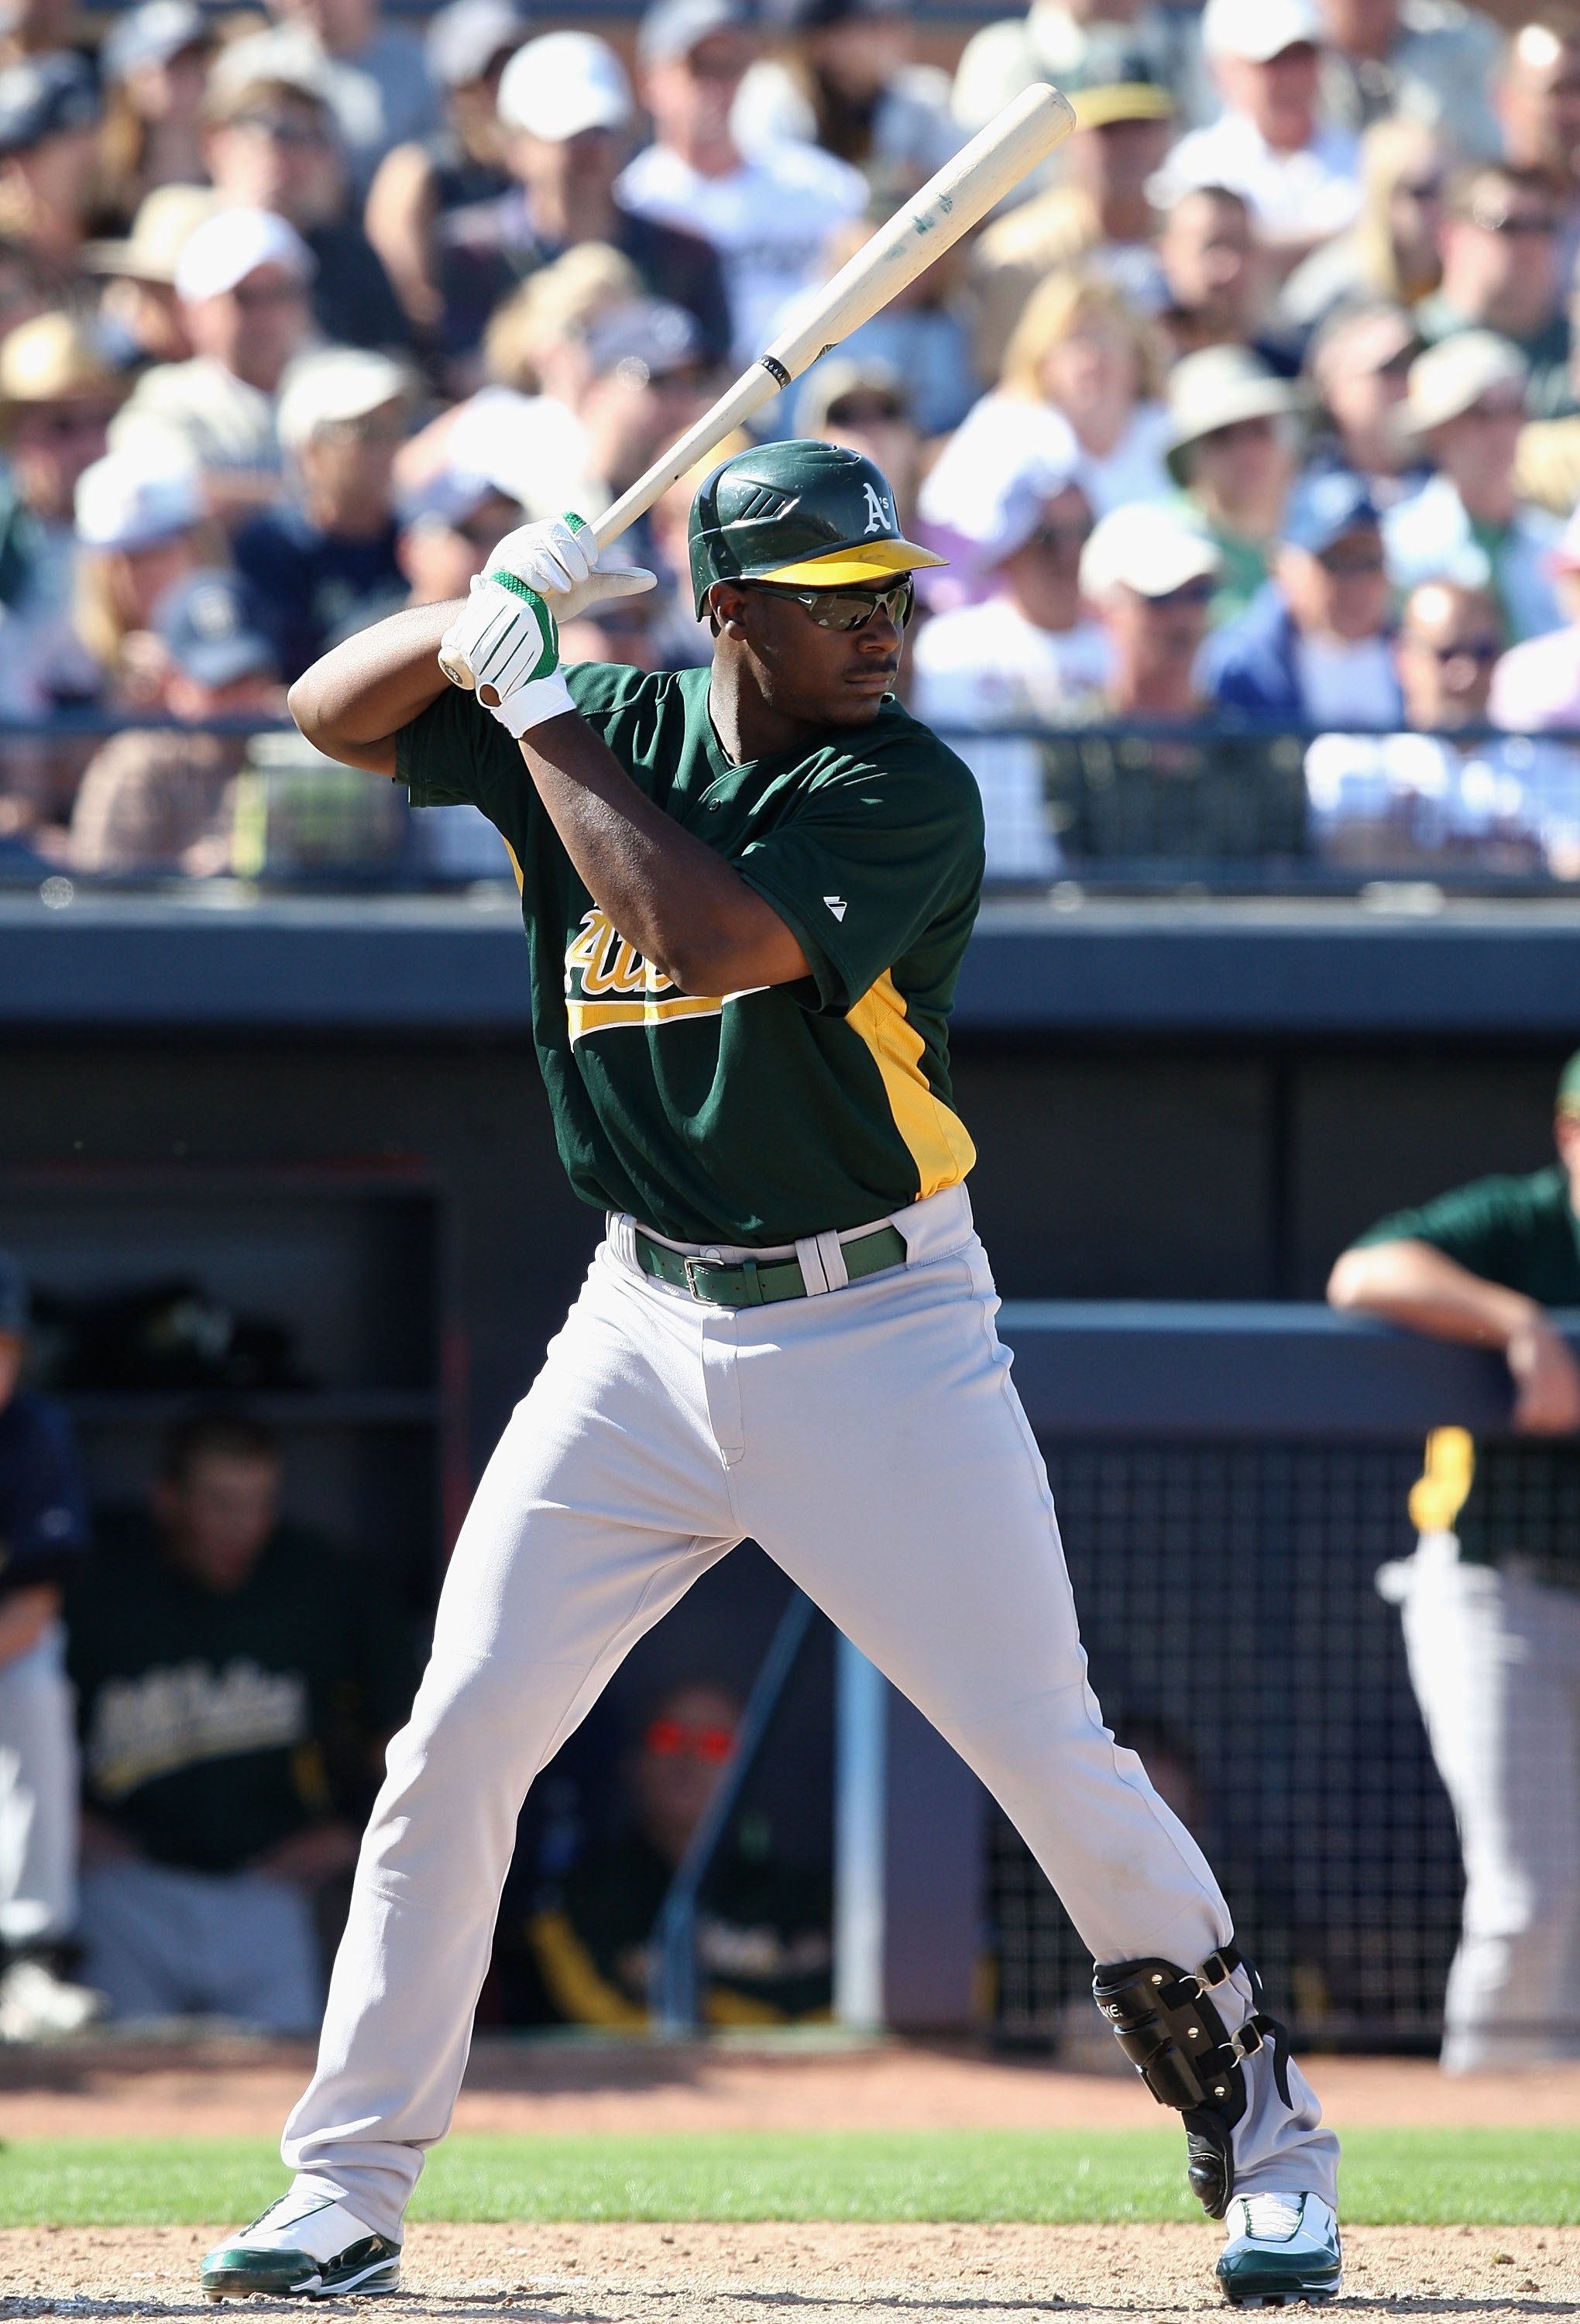 PEORIA, AZ - MARCH 07:  Chris Carter #75 of the Oakland Athletics bats against the San Diego Padres during the spring training game at Peoria Stadium on March 7, 2009 in Peoria, Arizona  The A's defeated the Padres 15-6.  (Photo by Christian Petersen/Gett